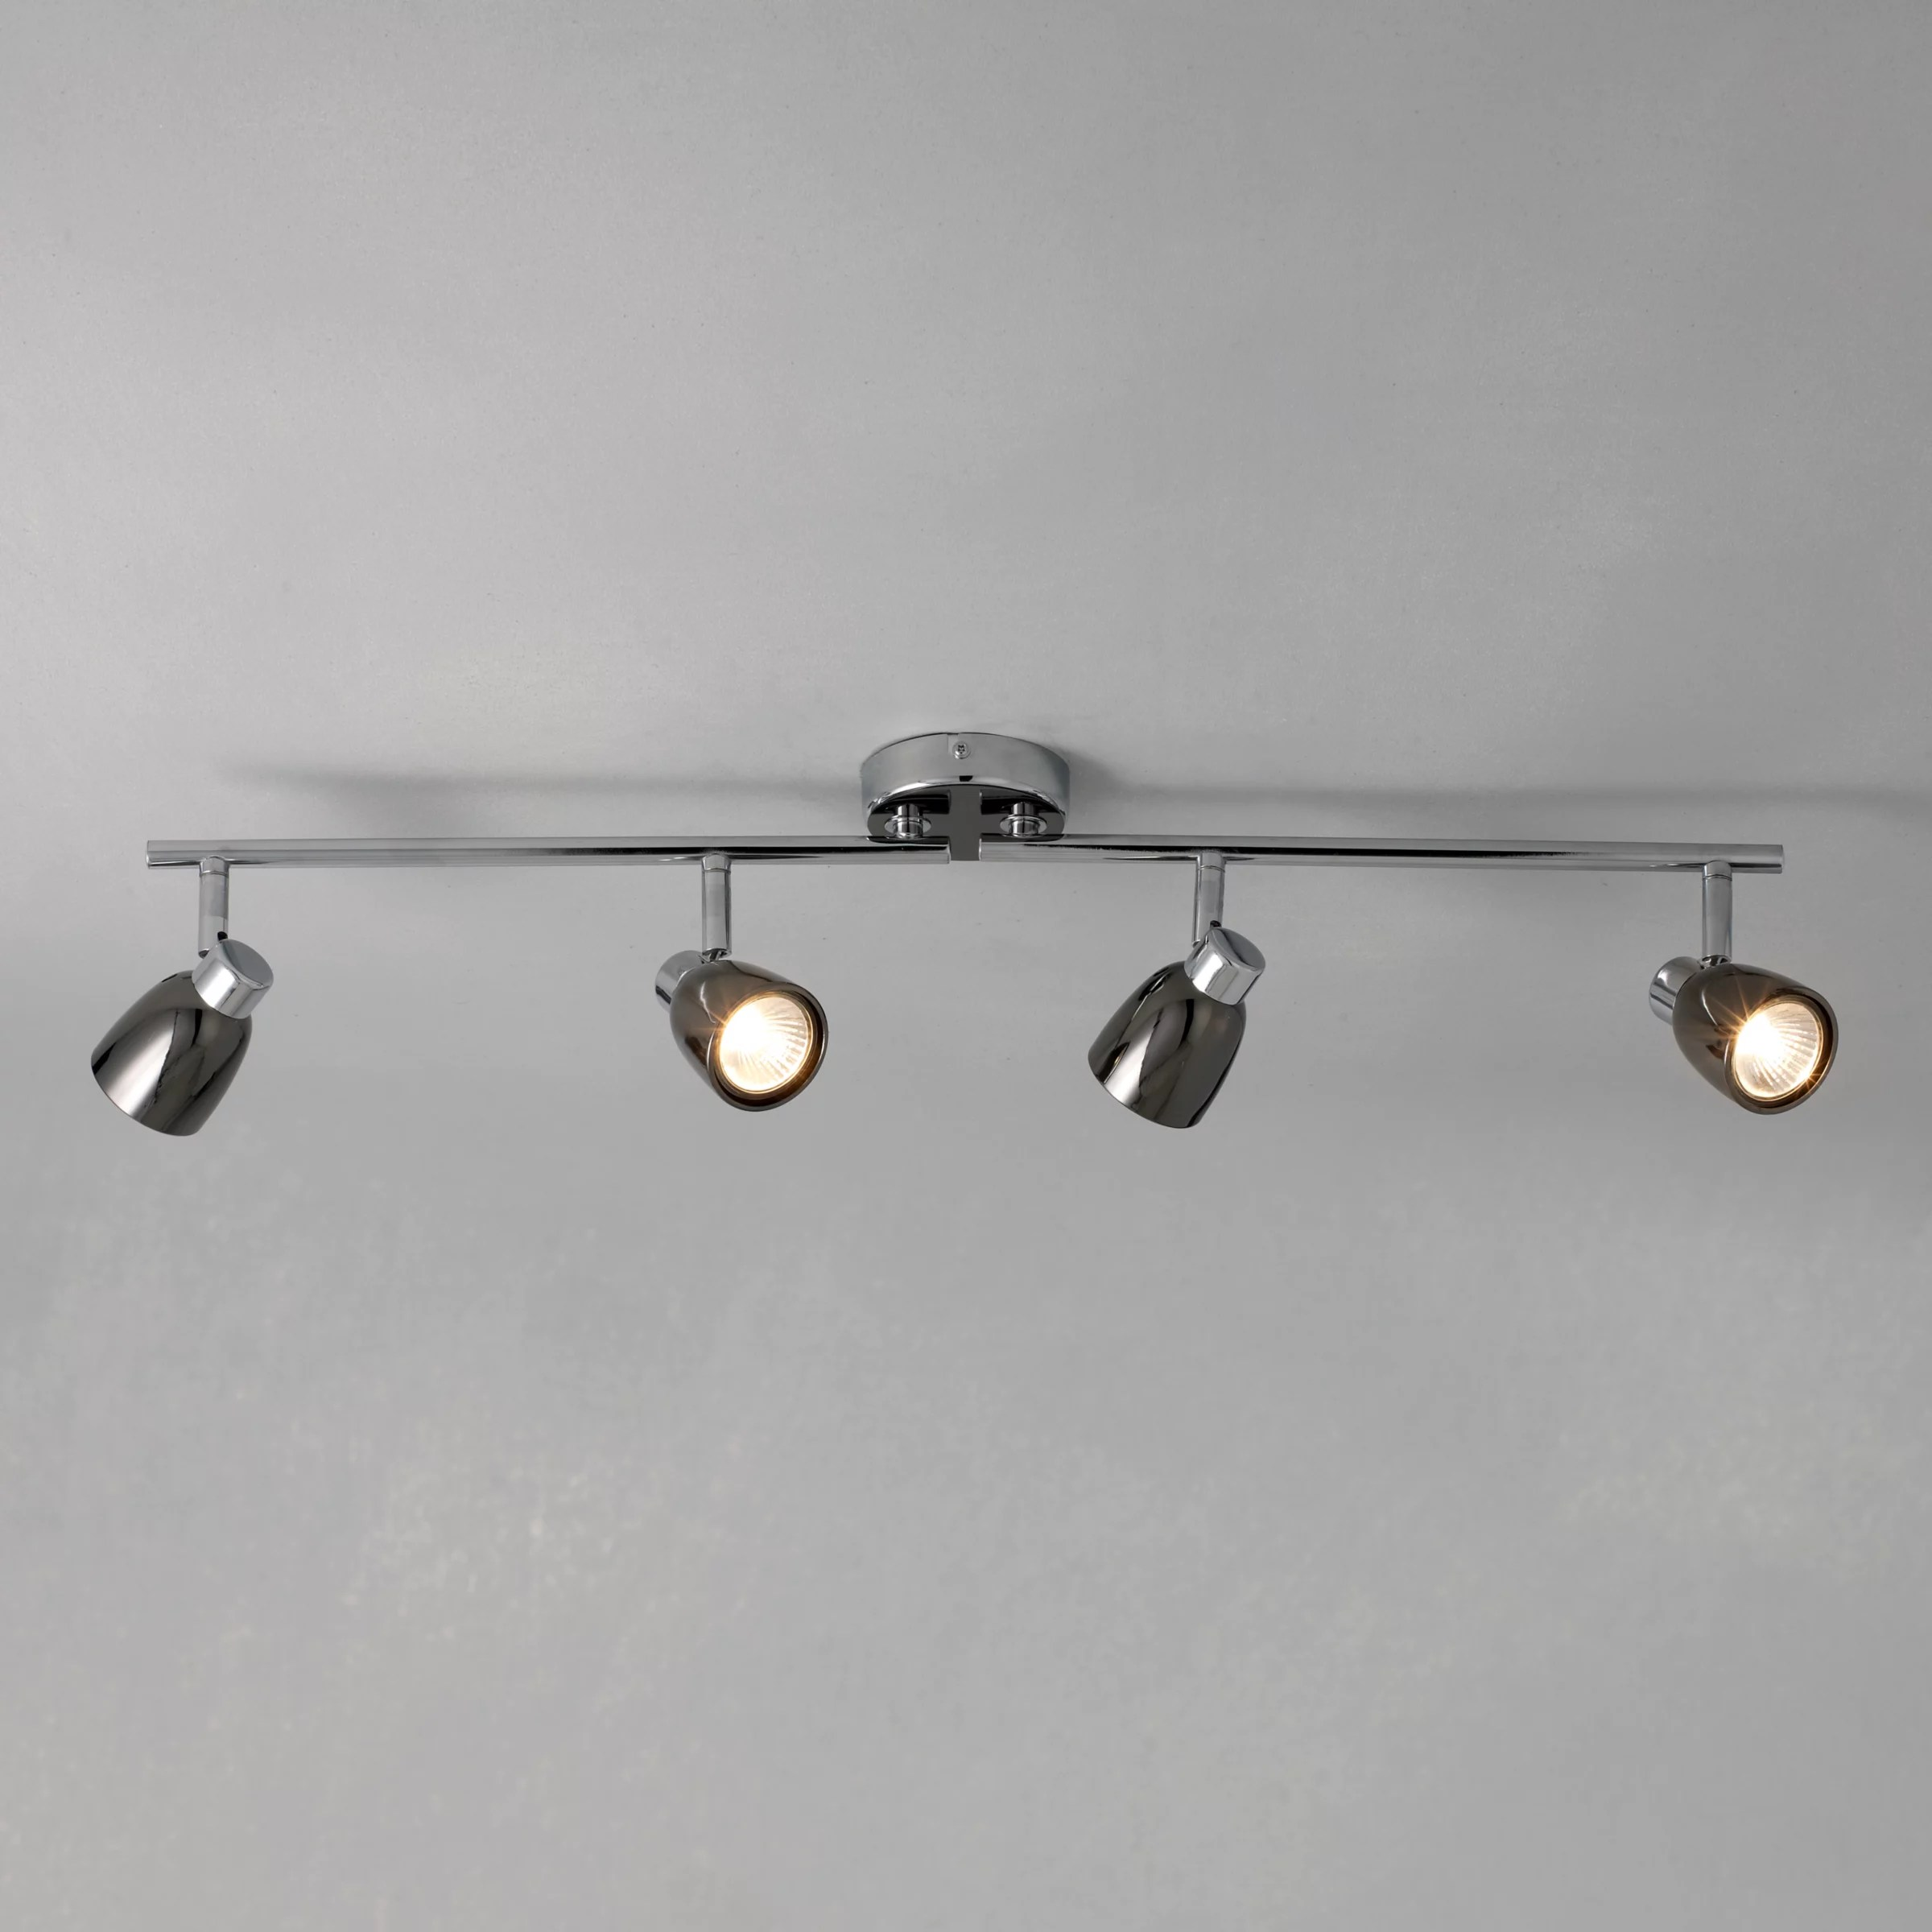 kitchen spotlights side sprayer lighting john lewis partners fenix gu10 led 4 spotlight ceiling bar black pearl nickel